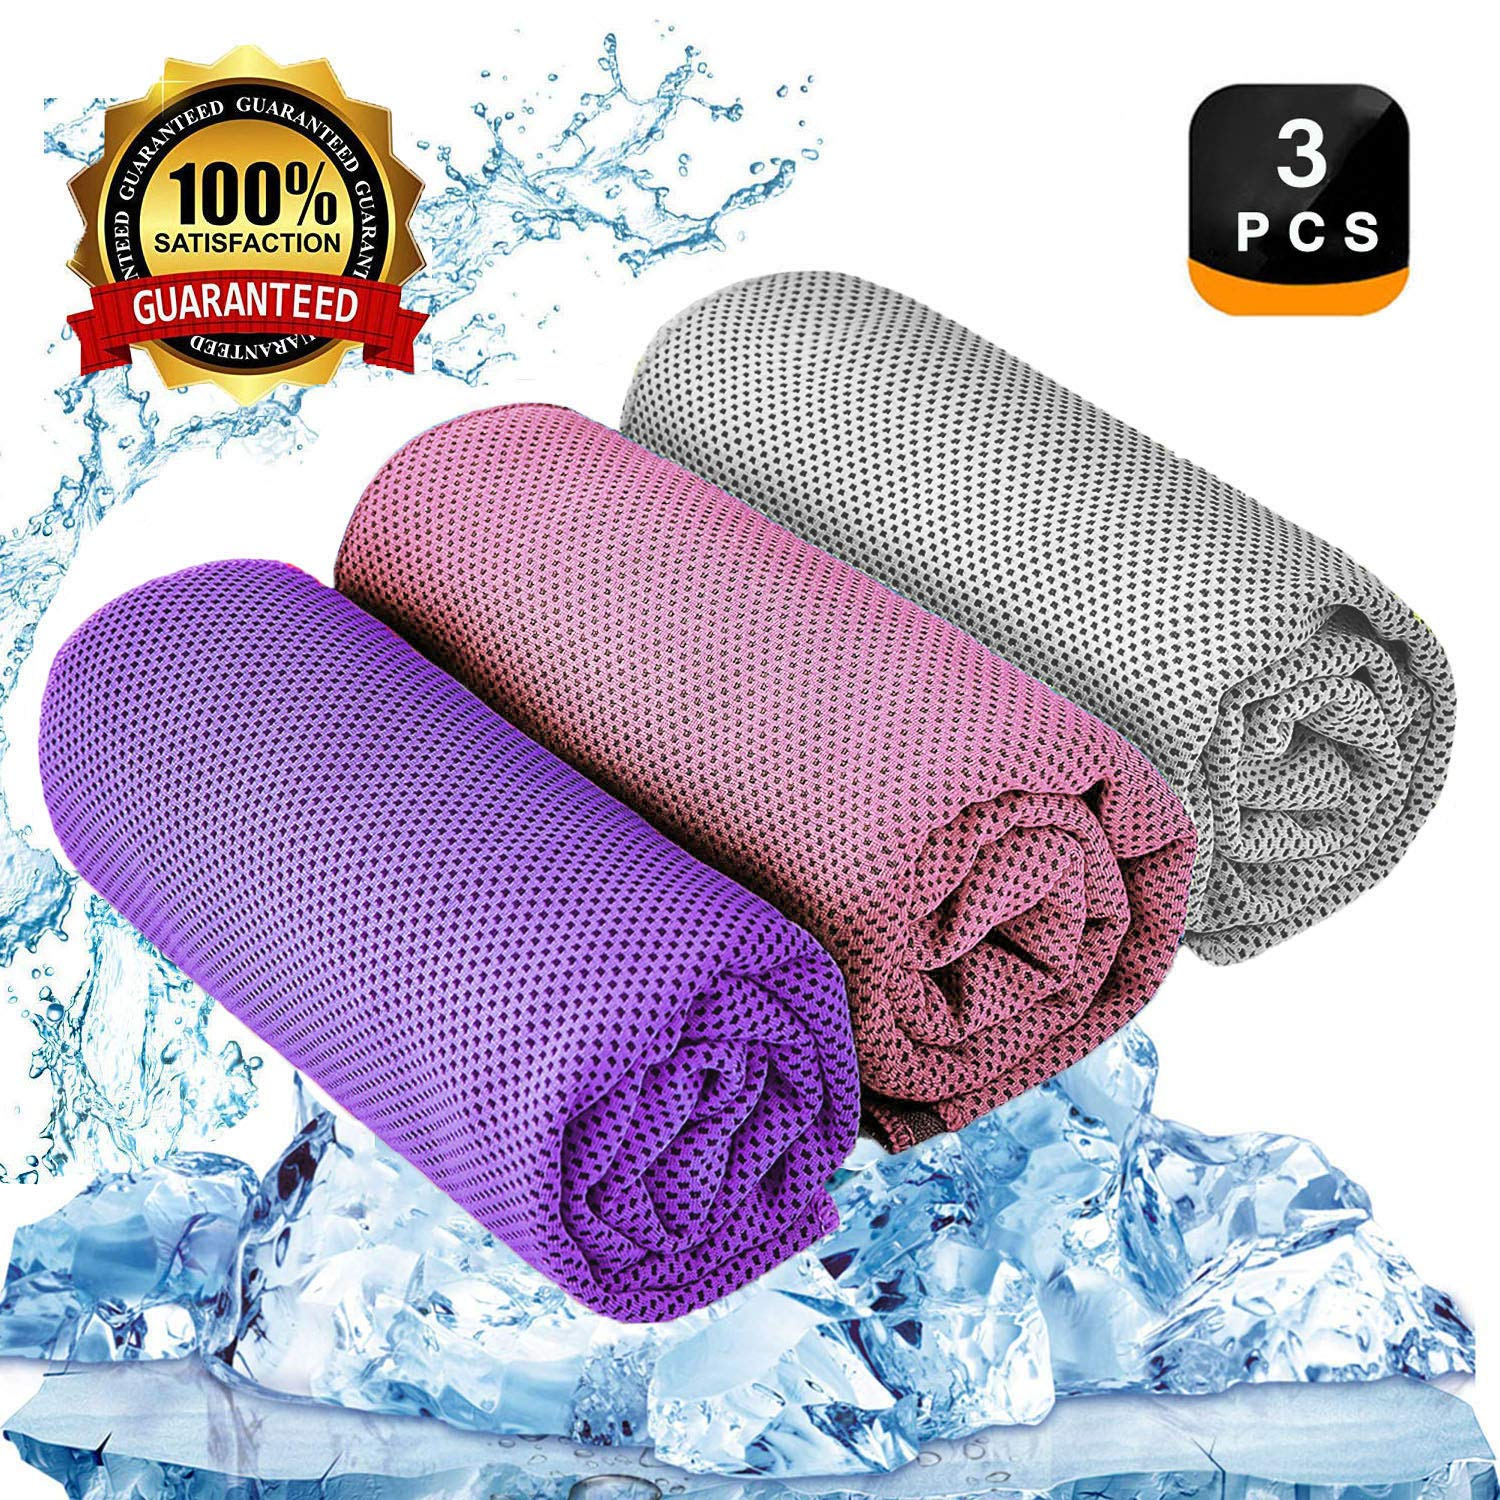 YQXCC Cooling Towel 3 Pcs (47''x12'') Microfiber Towel for Instant Cooling Relief, Cool Cold Towel for Yoga Golf Travel Gym Sports Camping Football & Outdoor Sports (Pink/Light Gray/Purple) by YQXCC